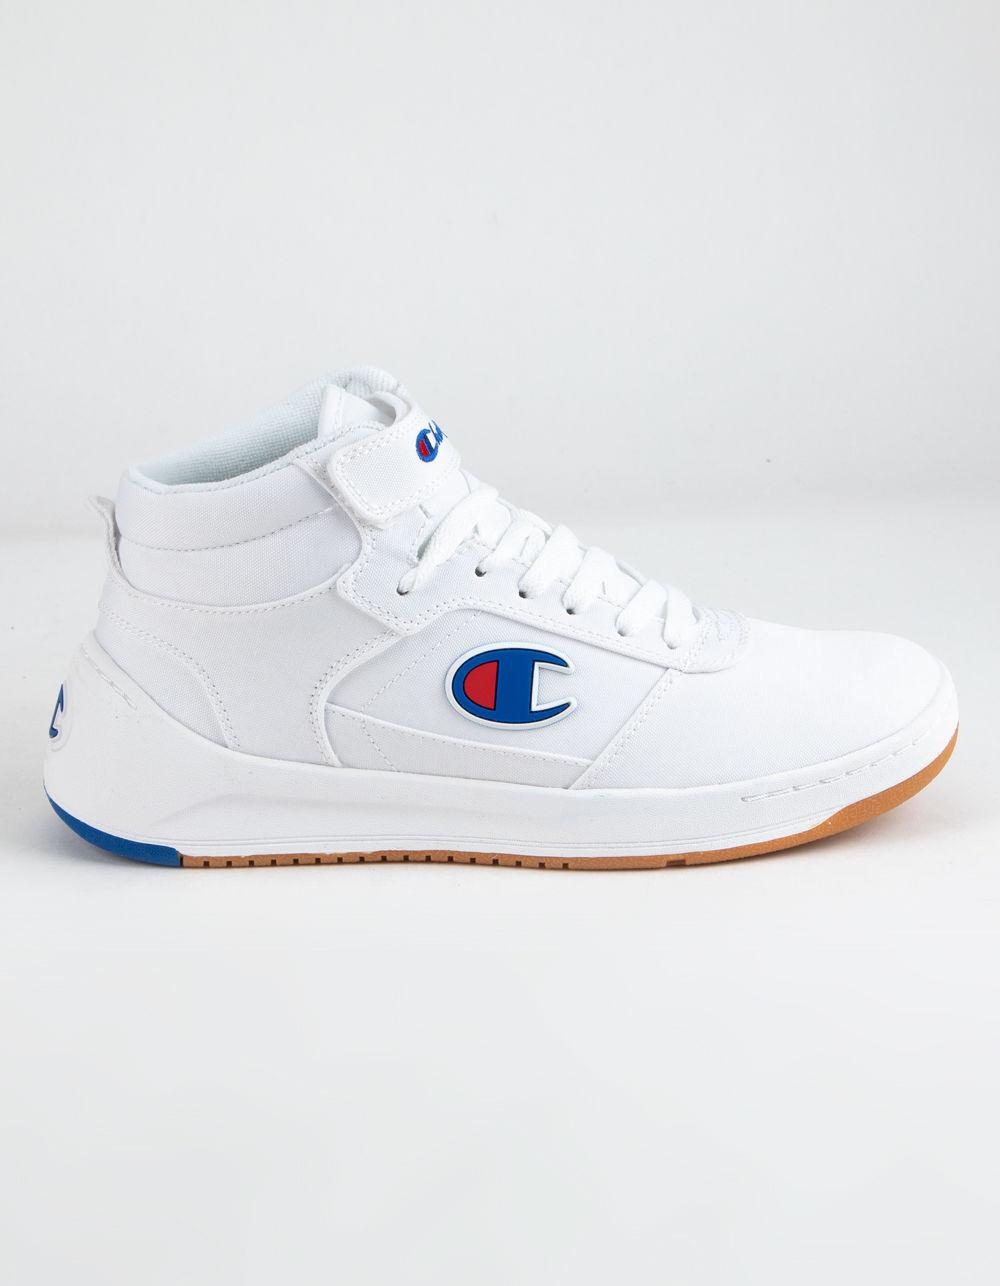 f59f4cd885914 Lyst - Champion Super C Court Mid Sneakers in White - Save 1%